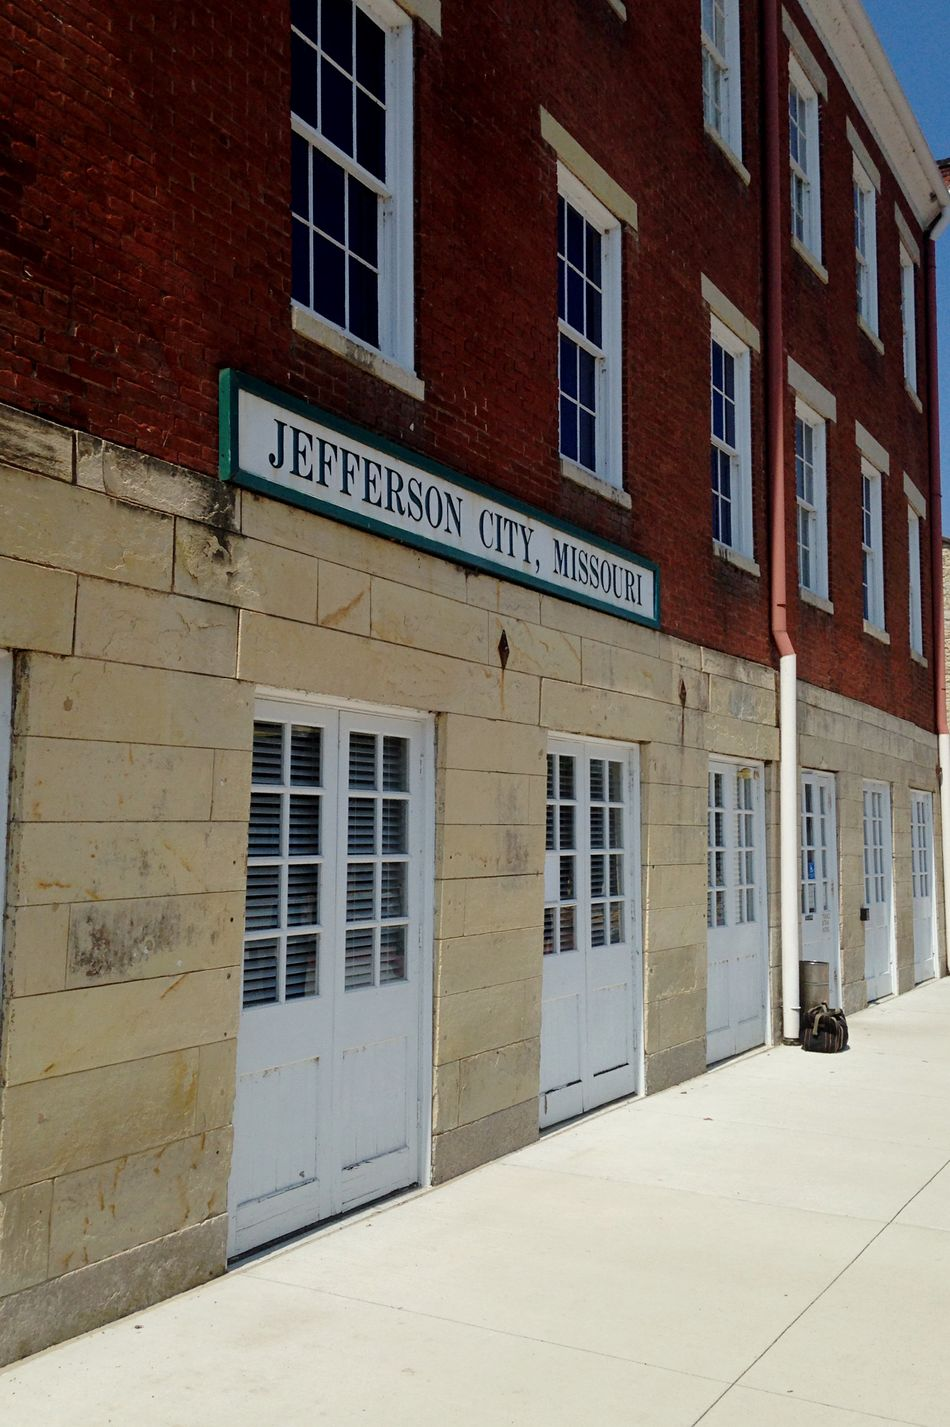 Jeffersoncitymo Missouri Train Station Historical Building